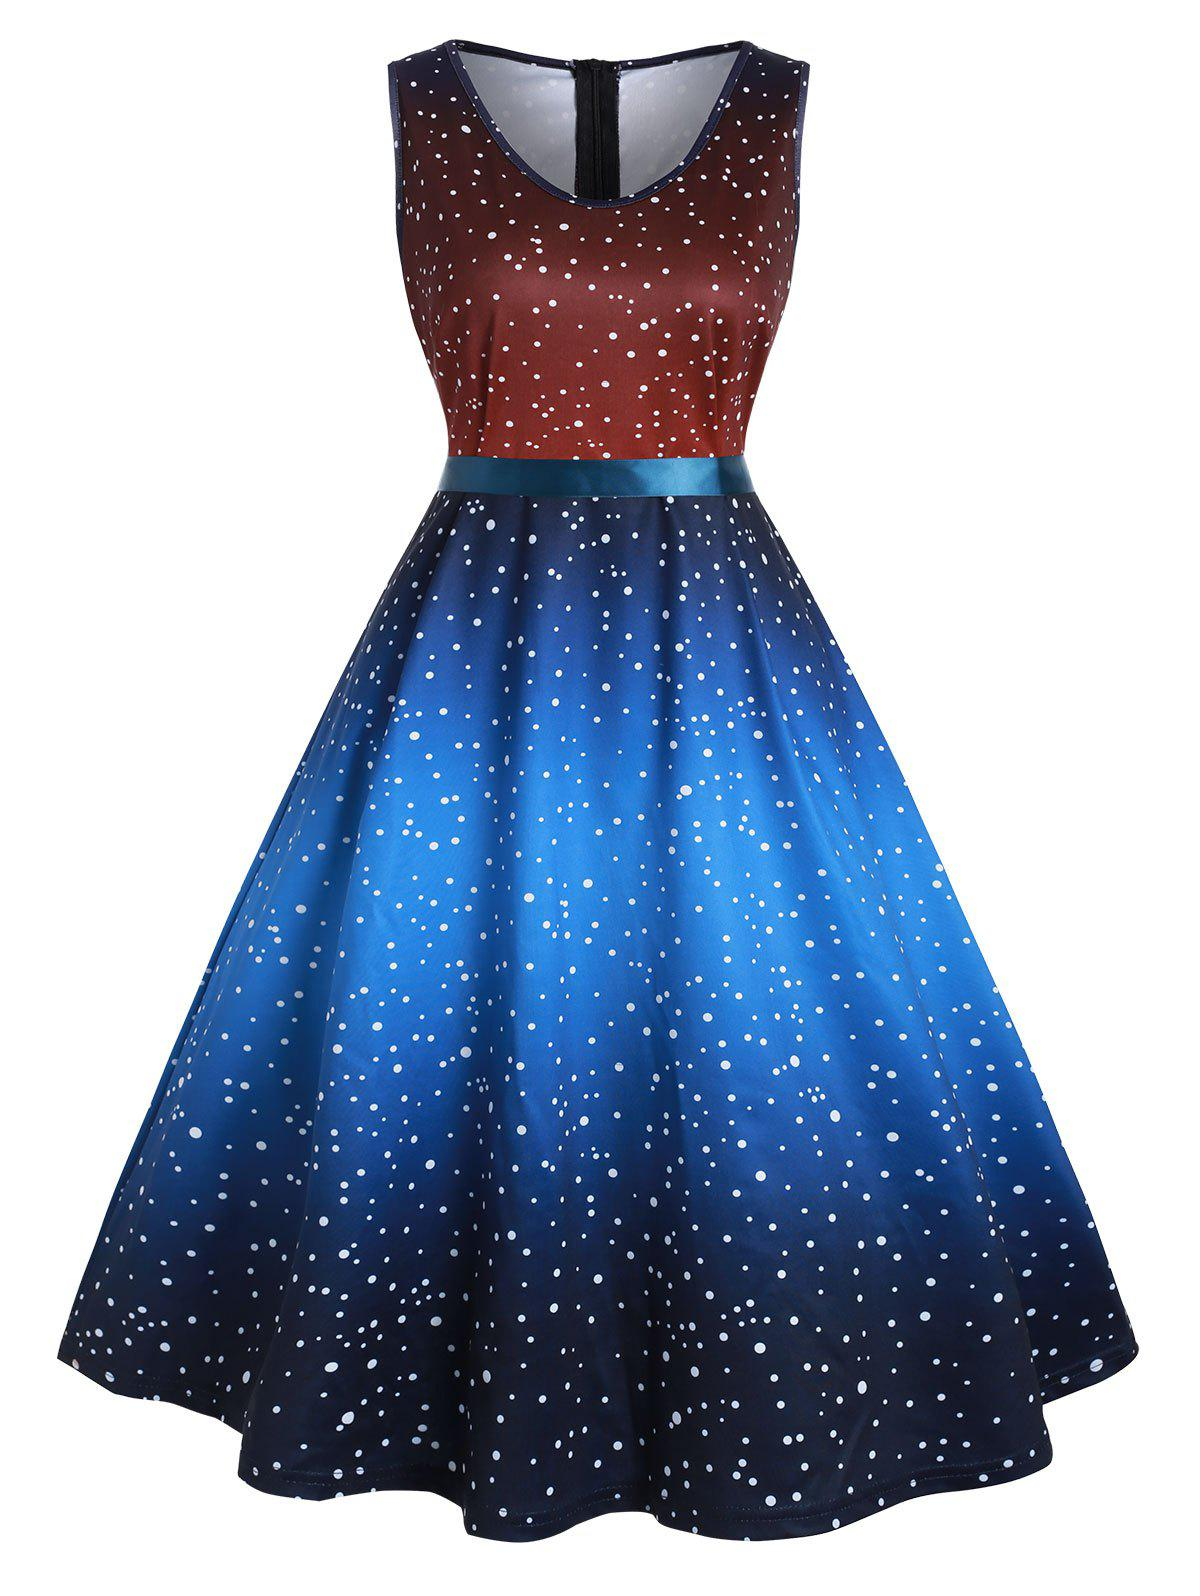 Plus Size Vintage Polka Dot Ombre Swing Dress